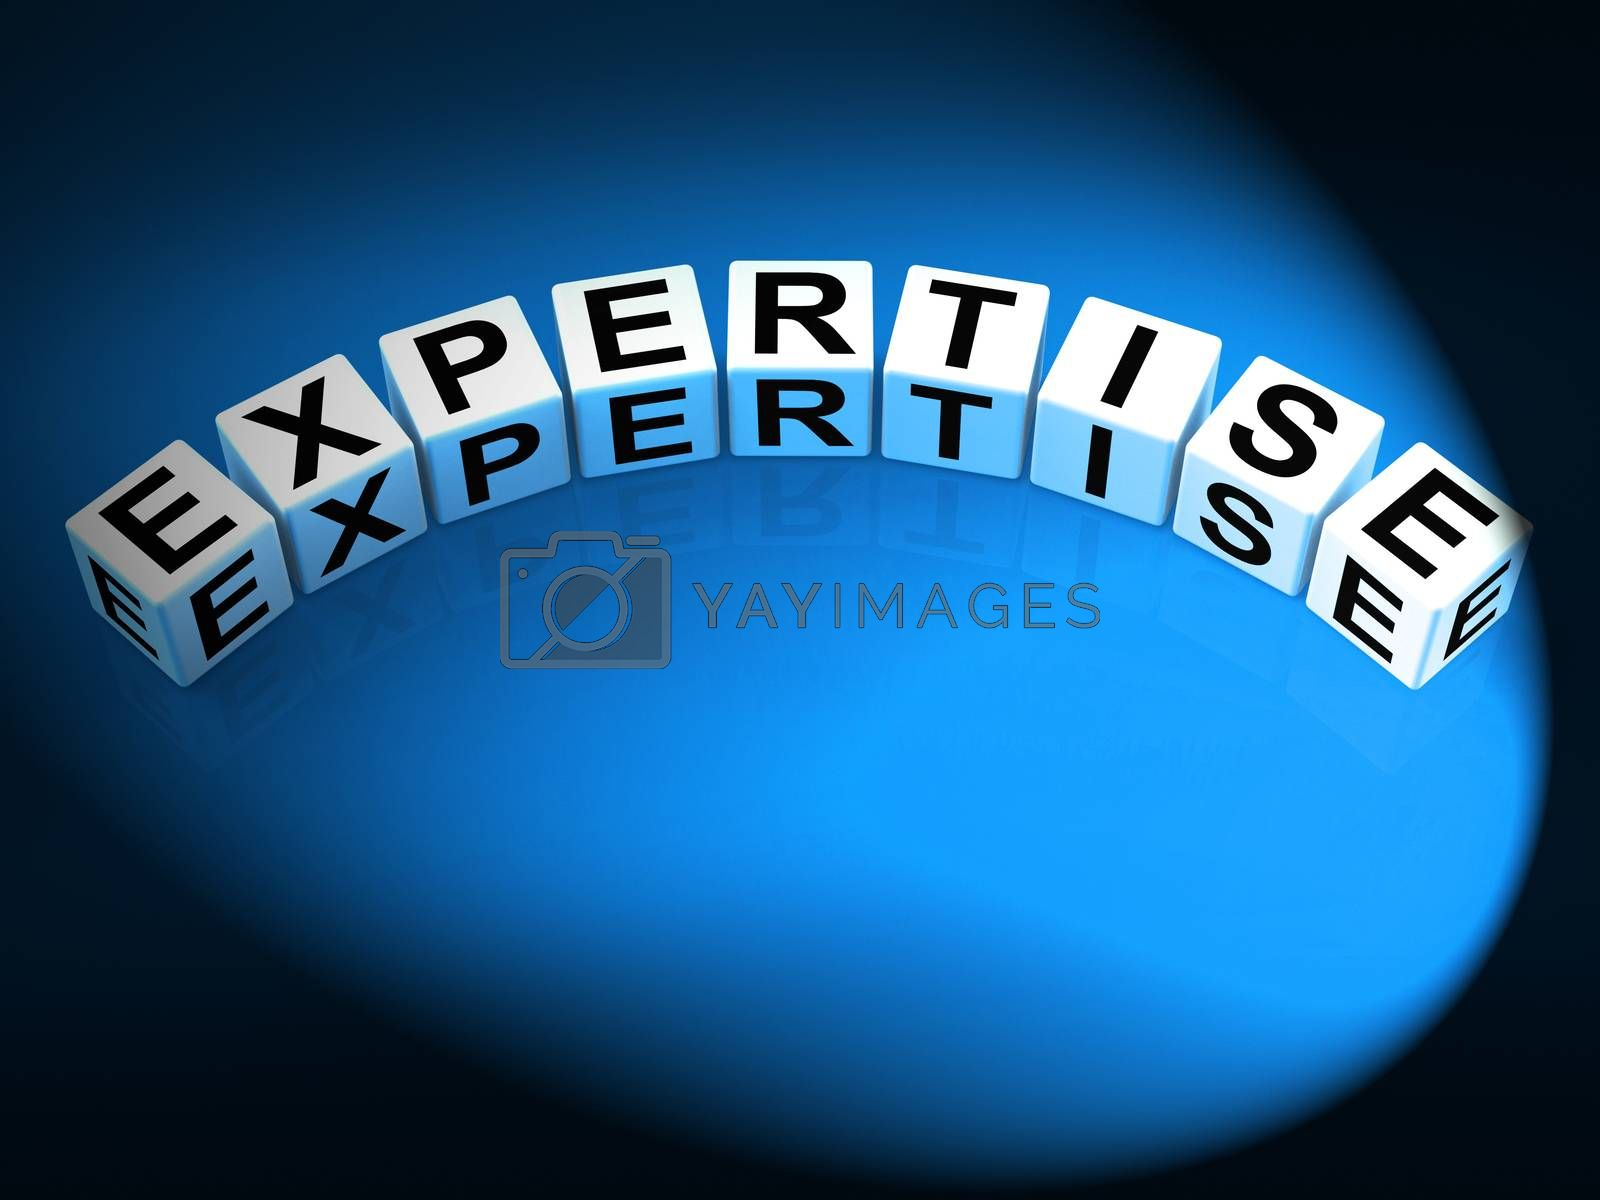 Expertise Dice Mean Expert Skills Training and Proficiency by stuartmiles